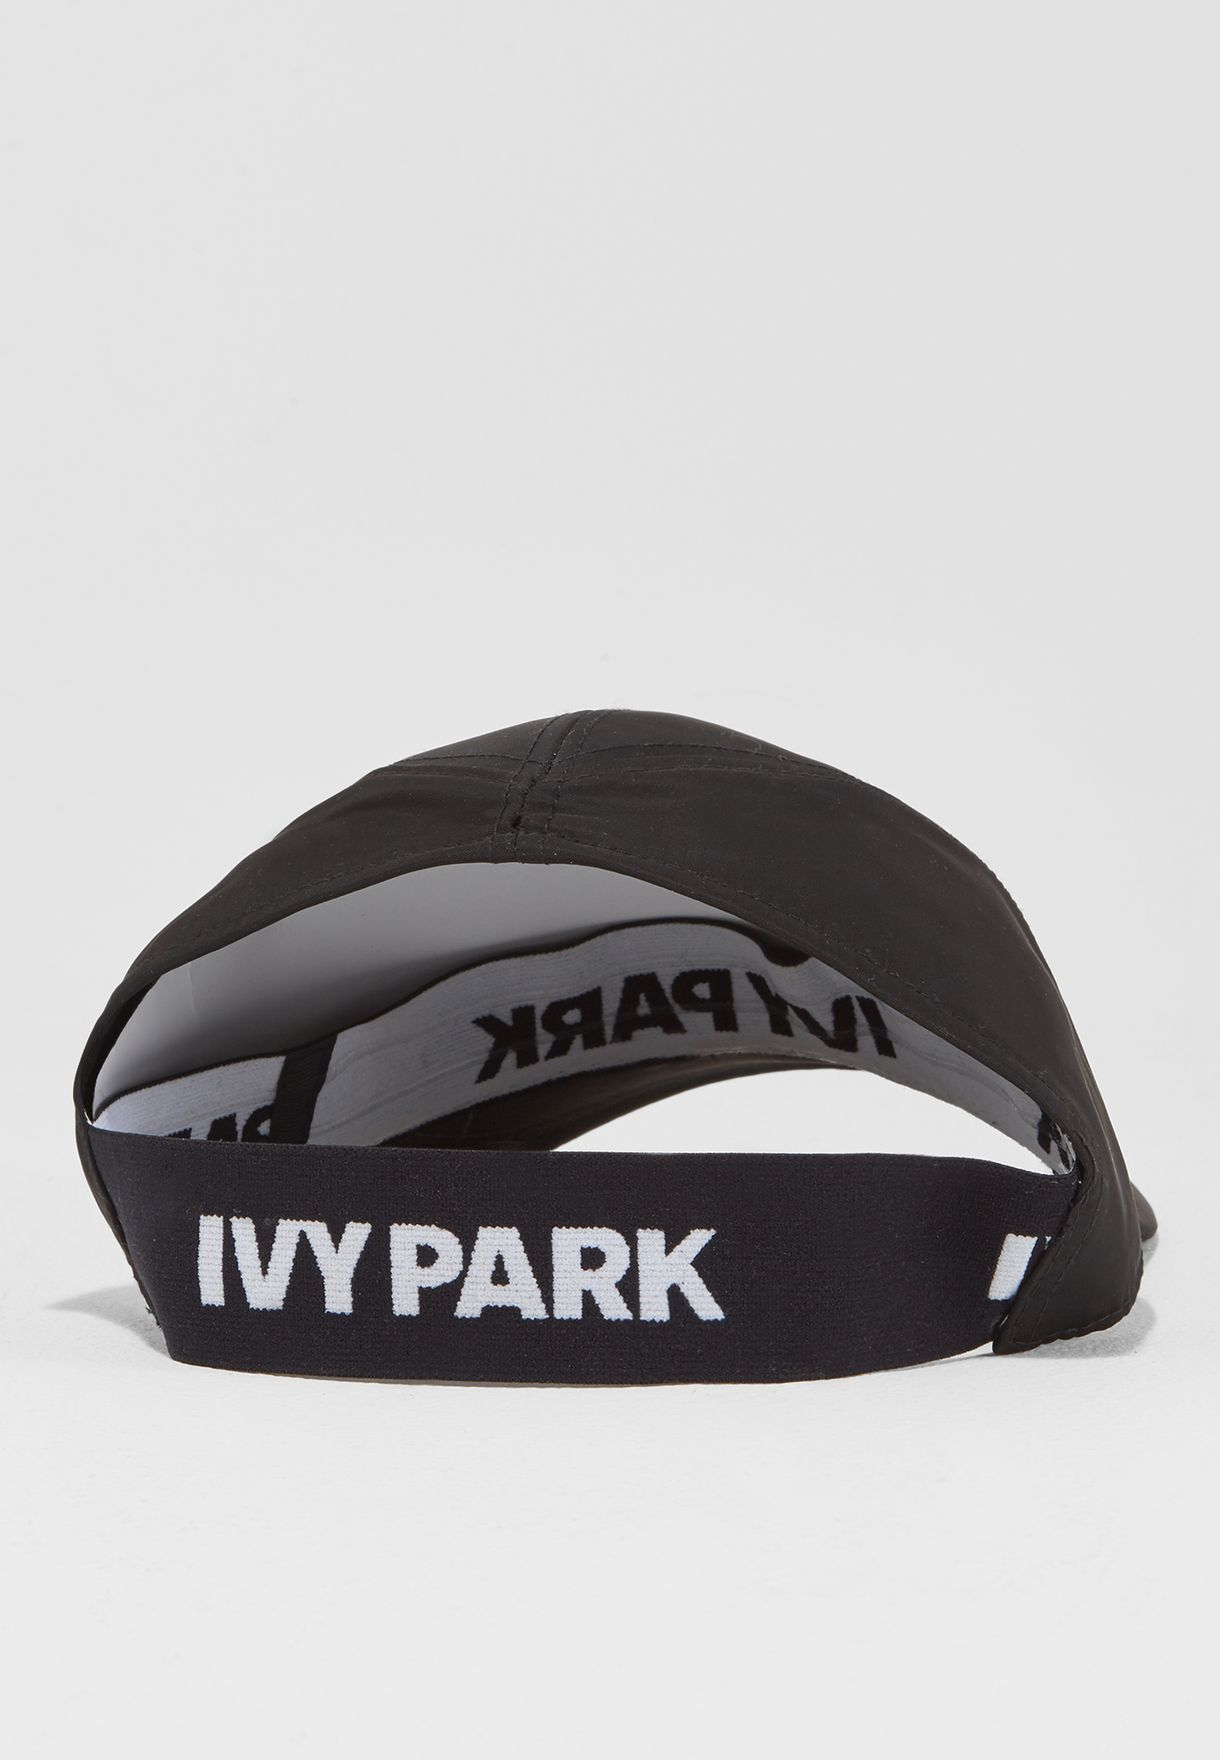 4f7e3a6954fc1 Shop Ivy Park black Nylon Backless Cap 29A92NBLK for Women in Saudi ...